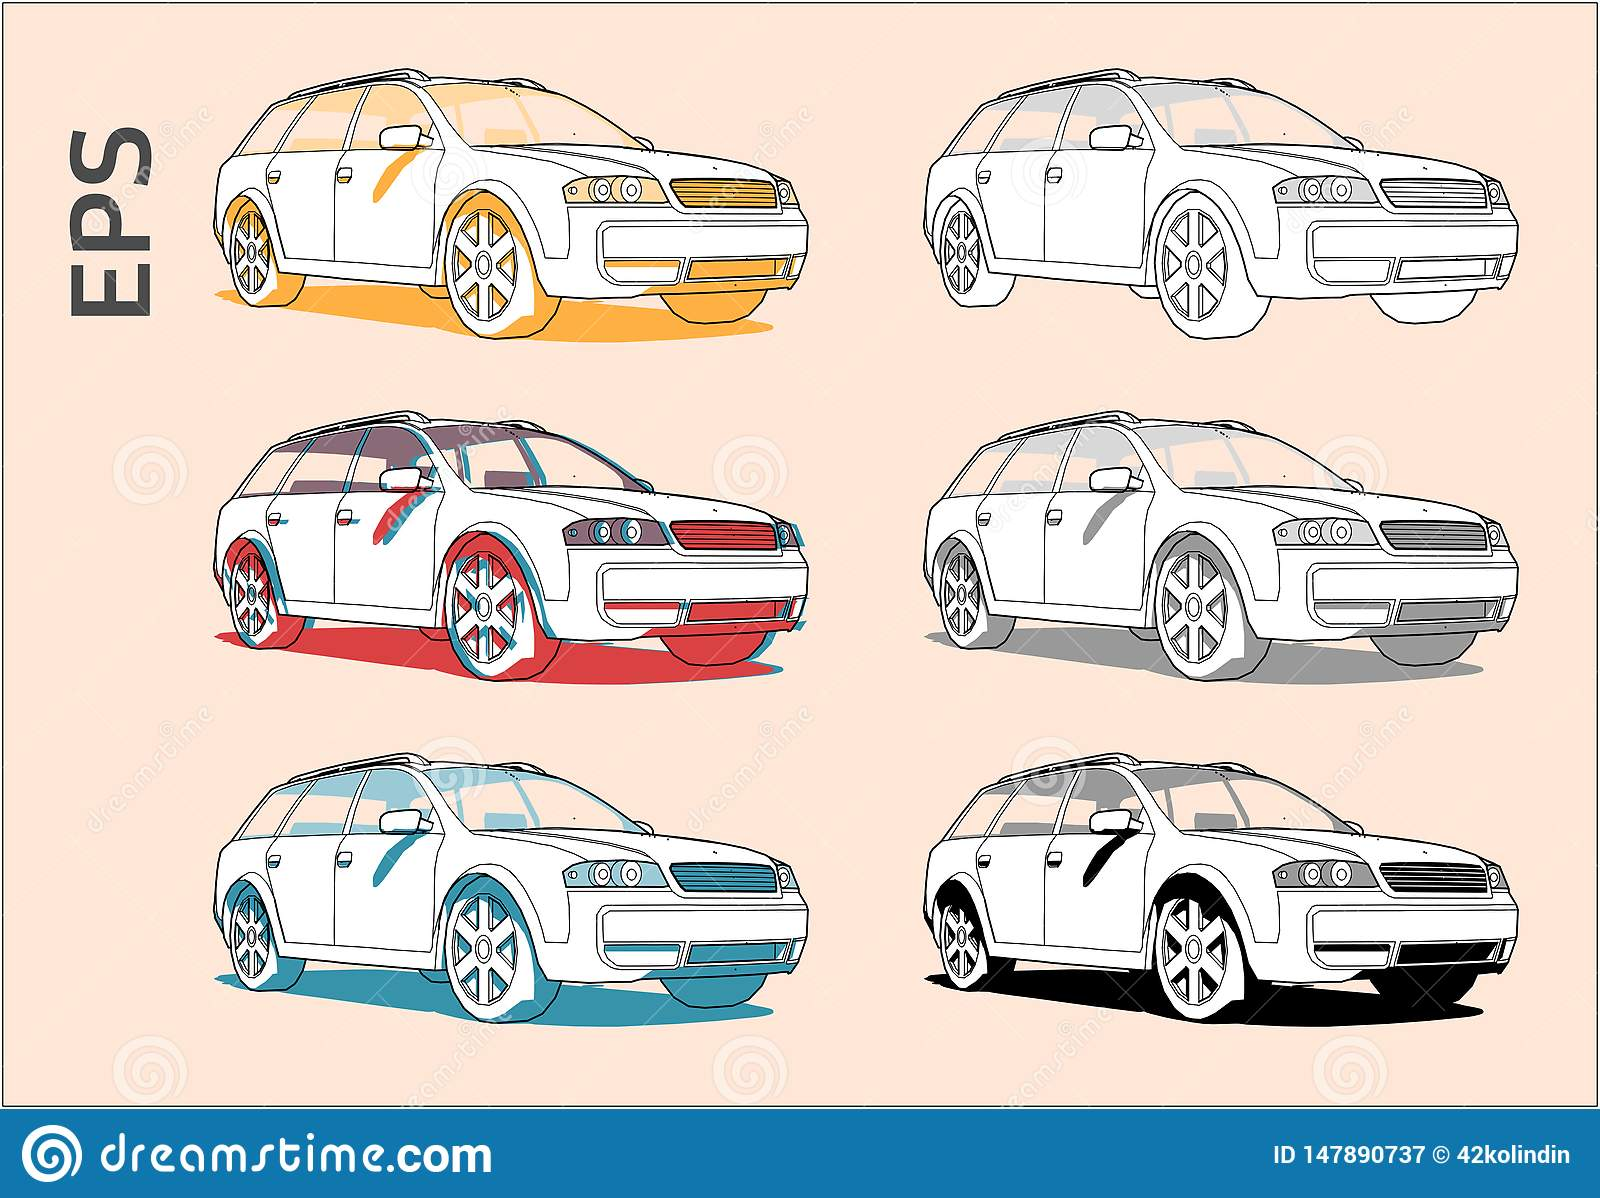 Car vector icons set for architectural drawing and illustration